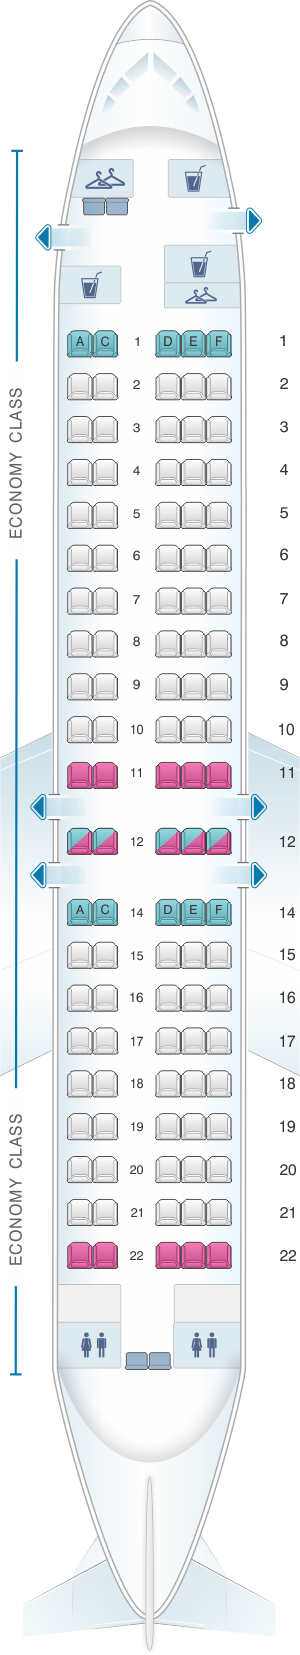 Seat map for Austrian Airlines Fokker 100